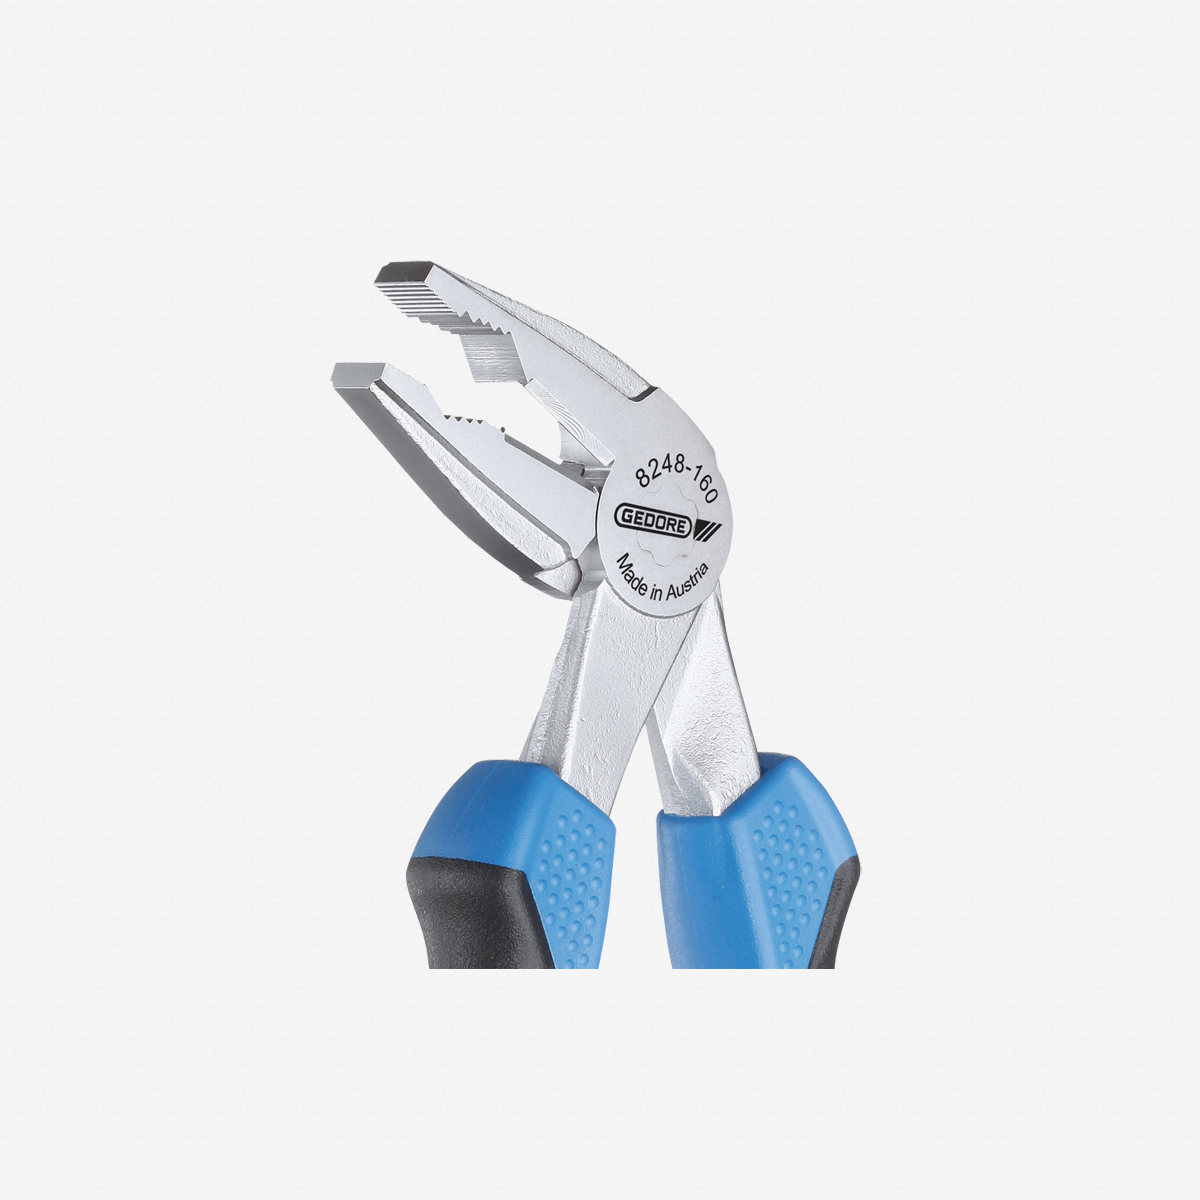 Gedore 8248-160 JC Combination pliers, angled, 160 mm - KC Tool